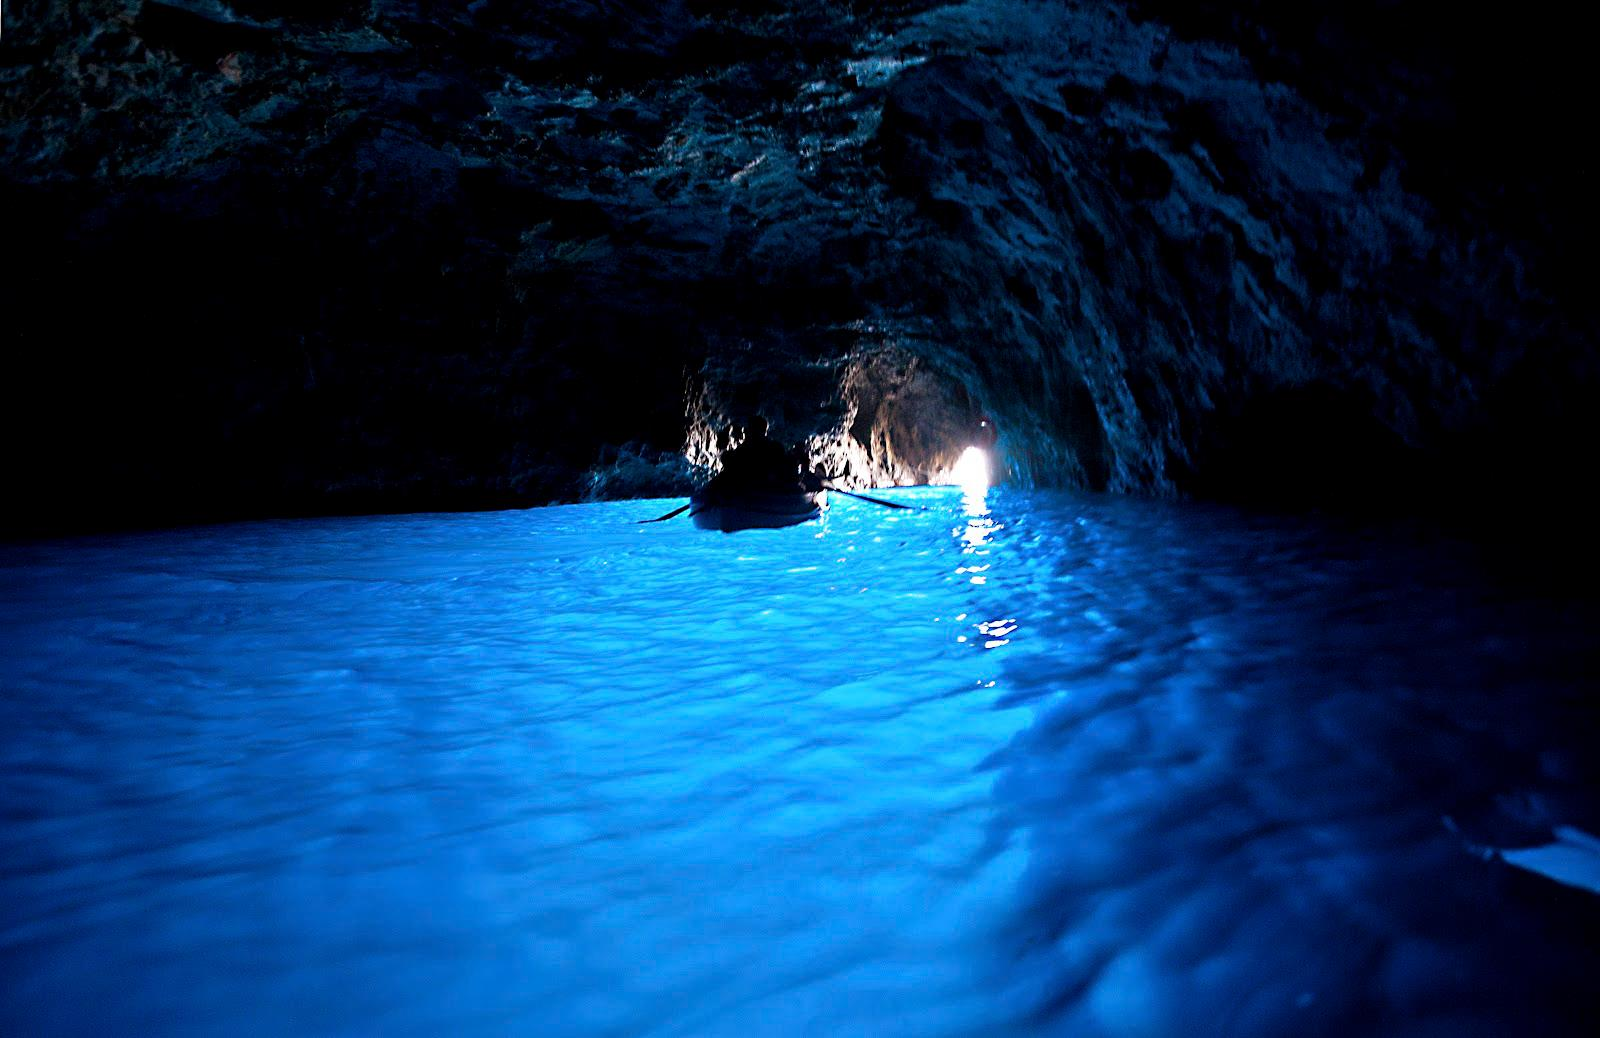 bluegrotto